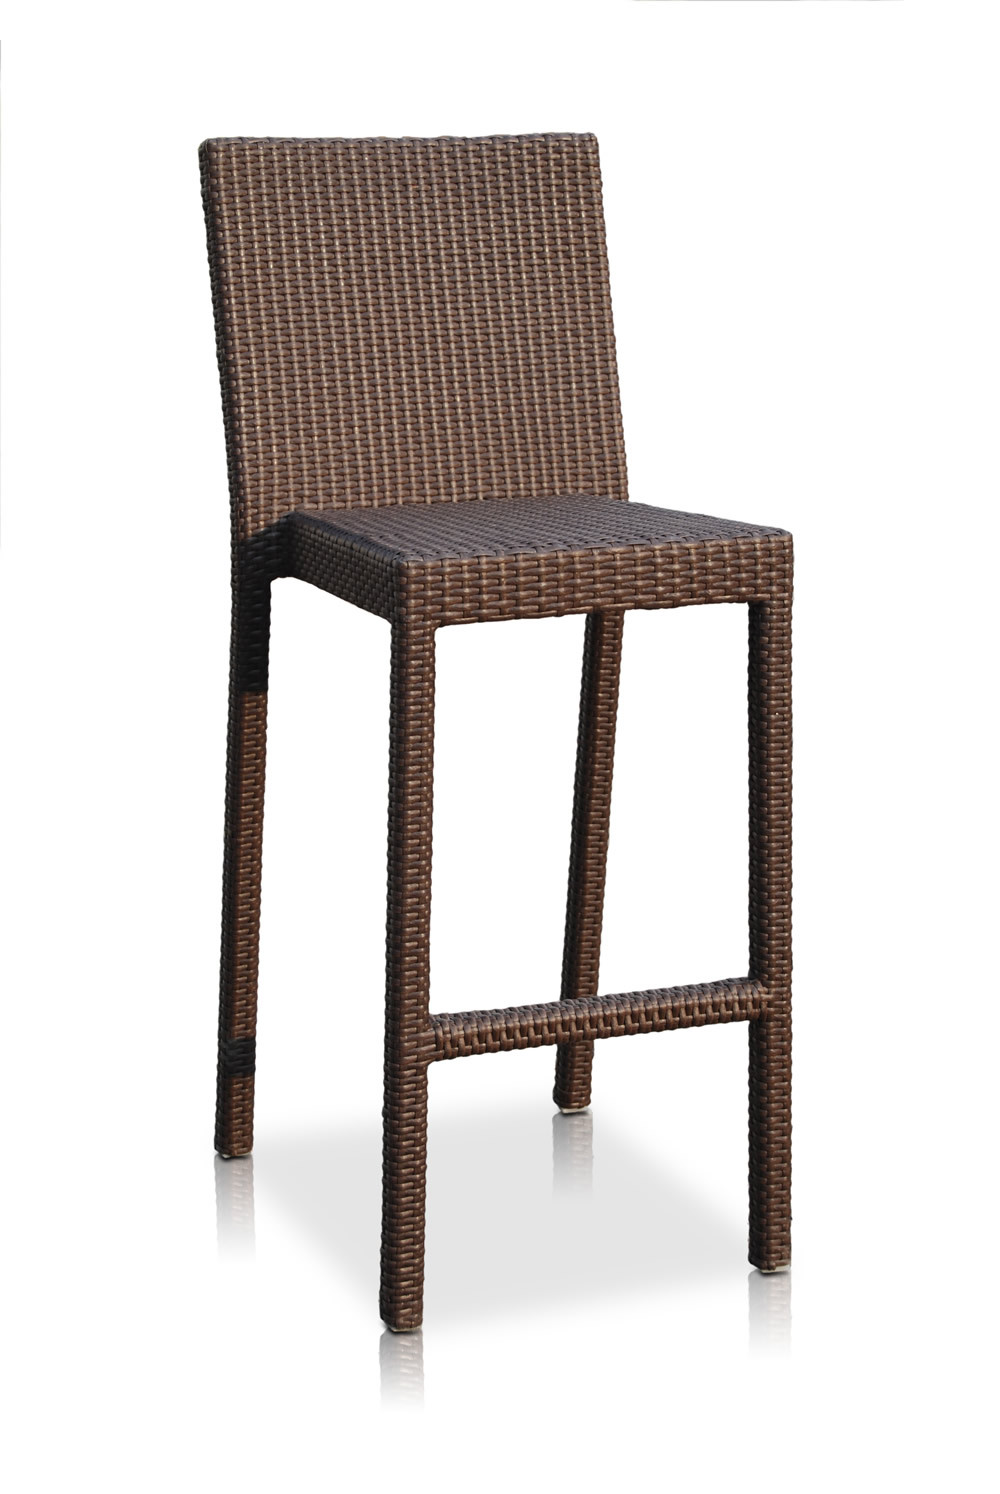 Hospitality Rattan Sydney Stackable Wicker Bar Stool Wicker Bar Stools Wicker Dining